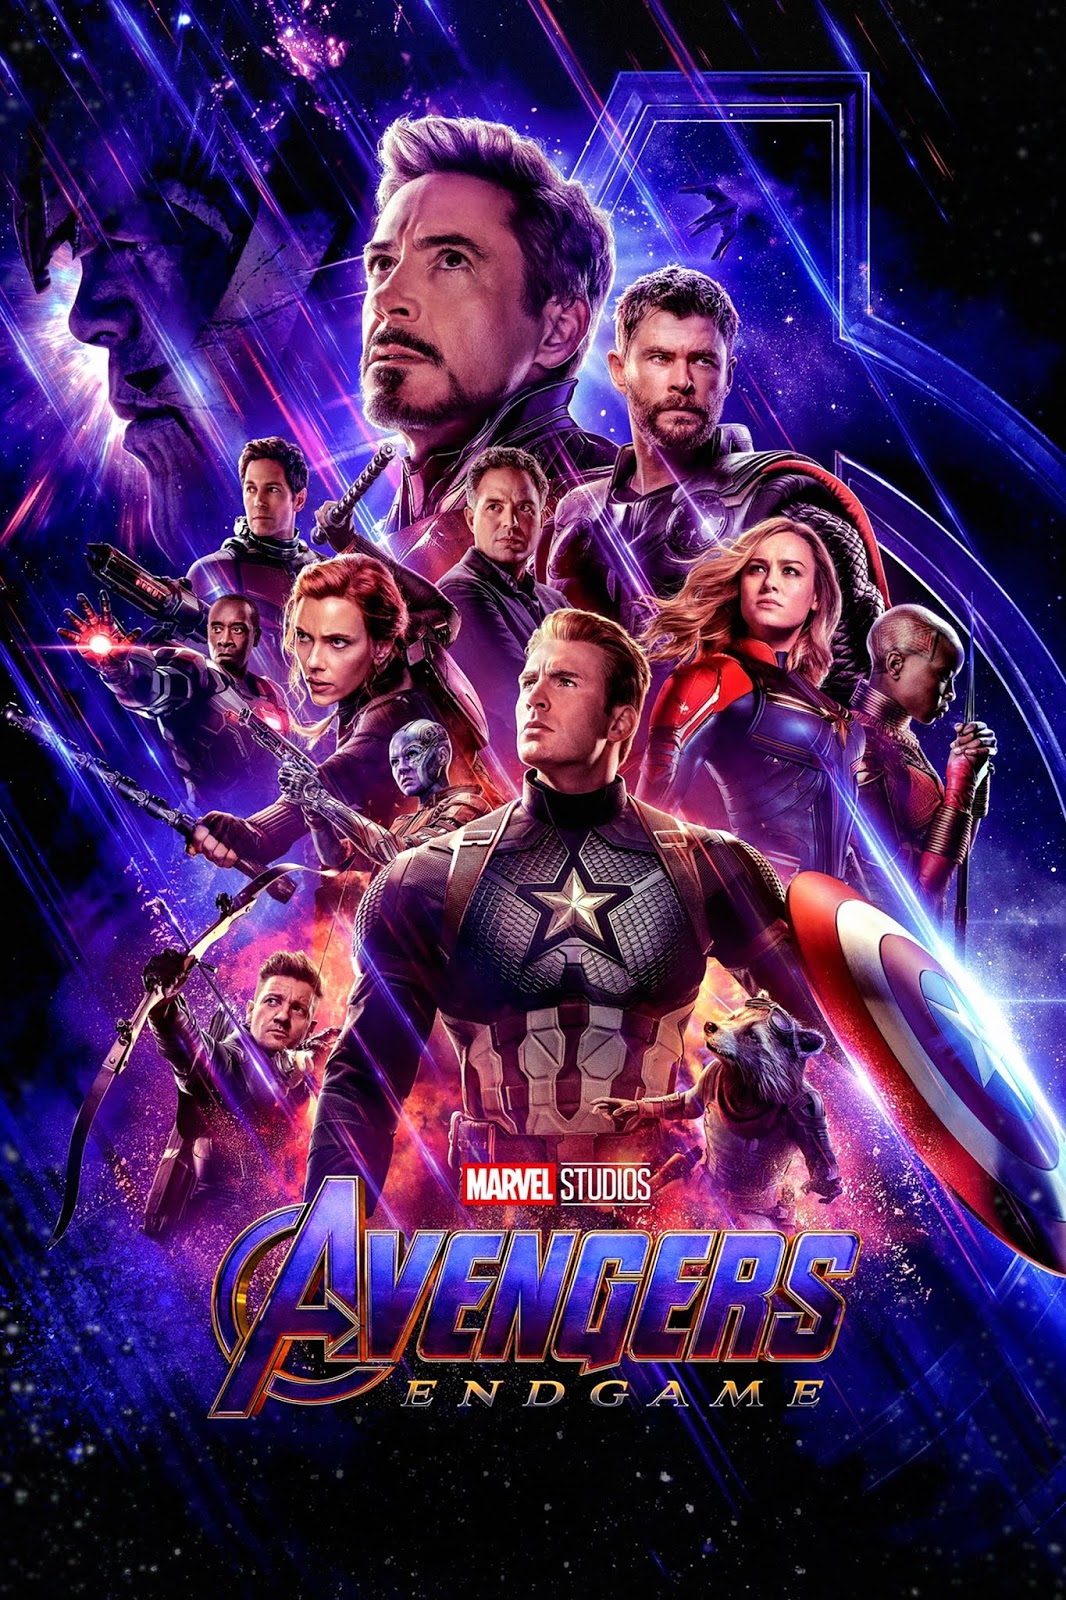 AVENGERS ENDGAME (2019) MOVIE TAMIL DUBBED HD (BDRIp)